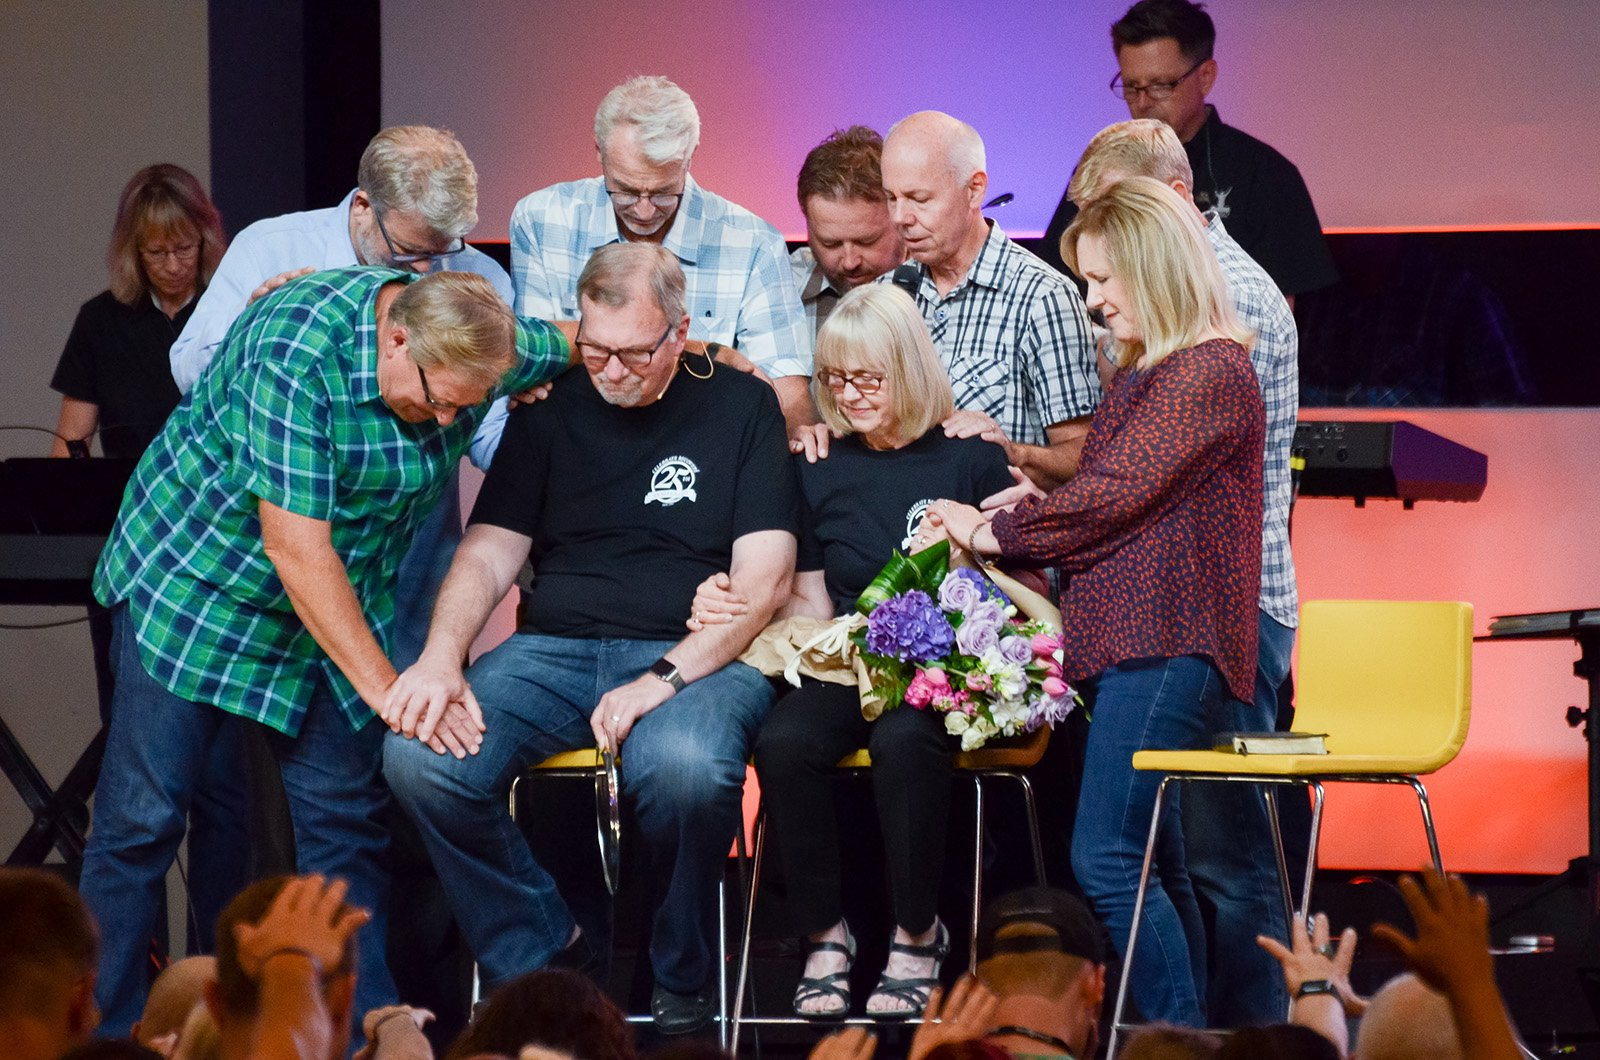 Pastor Rick Warren, left, and other pray over John and Cheryl Baker, seated, during the West Coast Celebrate Recovery Summit at Saddleback Church in Lake Forest, California, on Aug. 12, 2016. Photo by Dave Maurer, courtesy of Saddleback Church